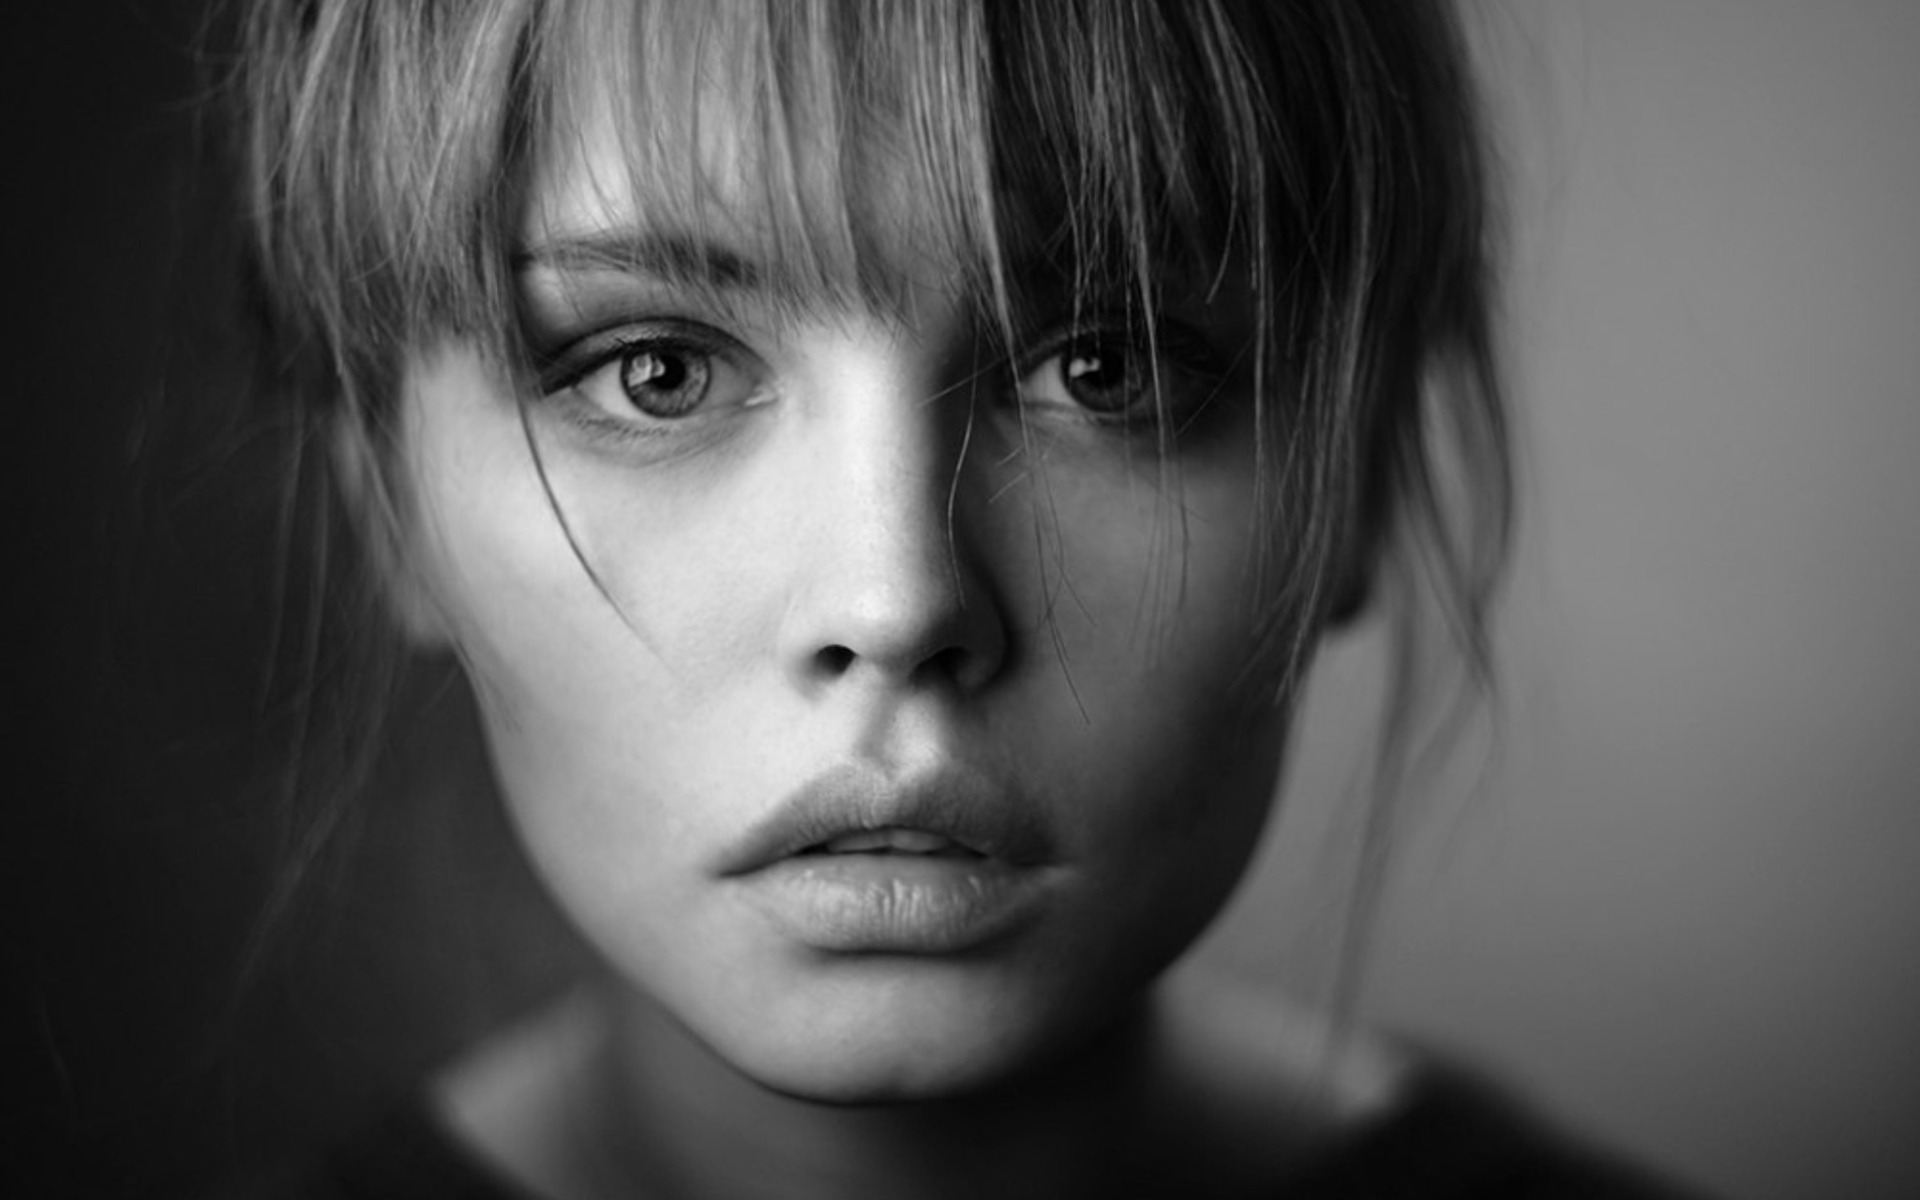 Wallpaper of anastasiya scheglova girl model black and white background hd image